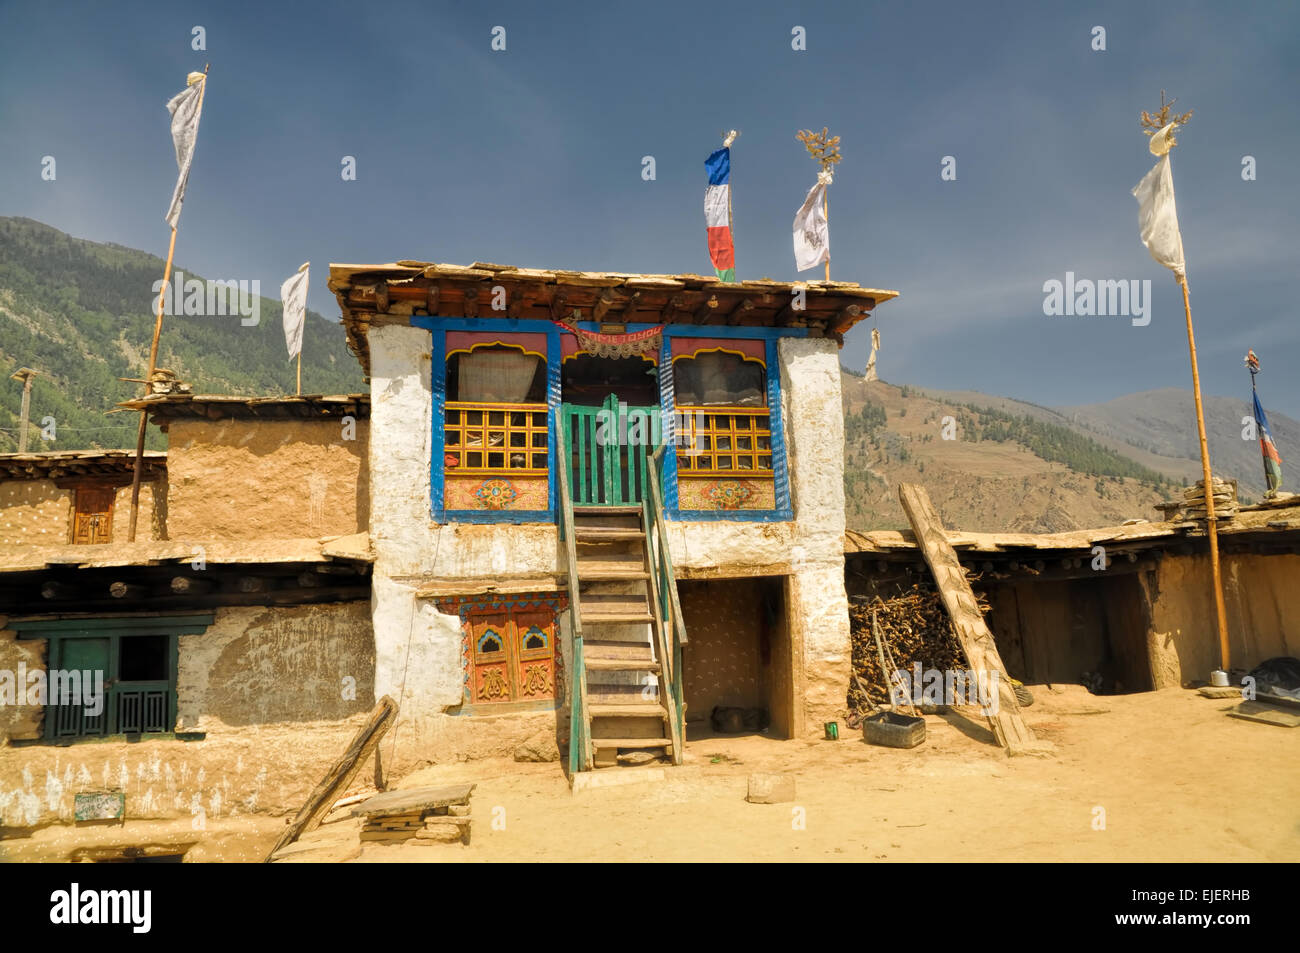 Picturesque view of old traditional Nepalese house - Stock Image